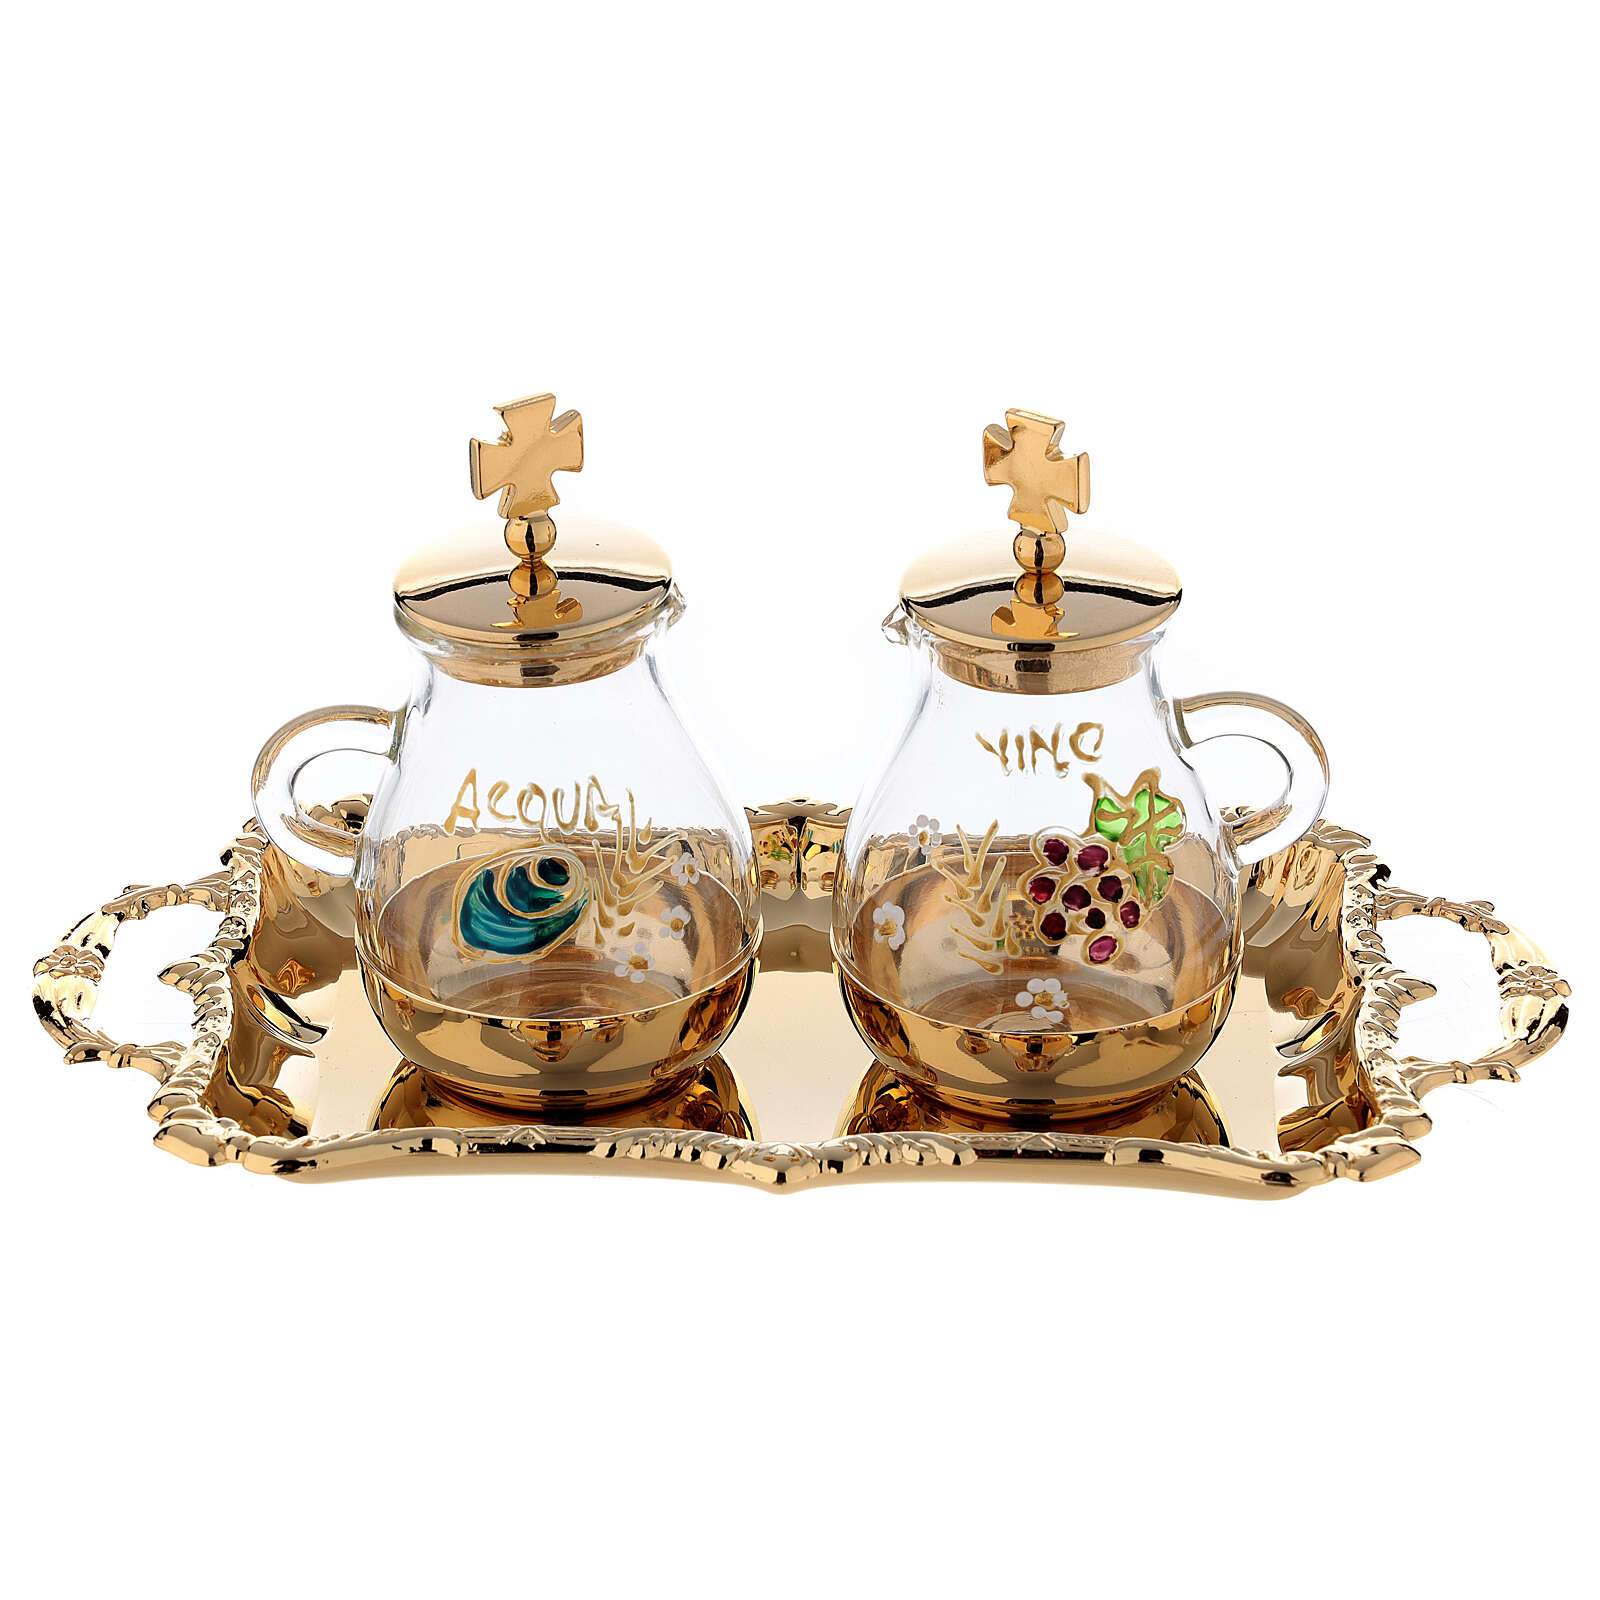 Gold plated and painted cruet set 4